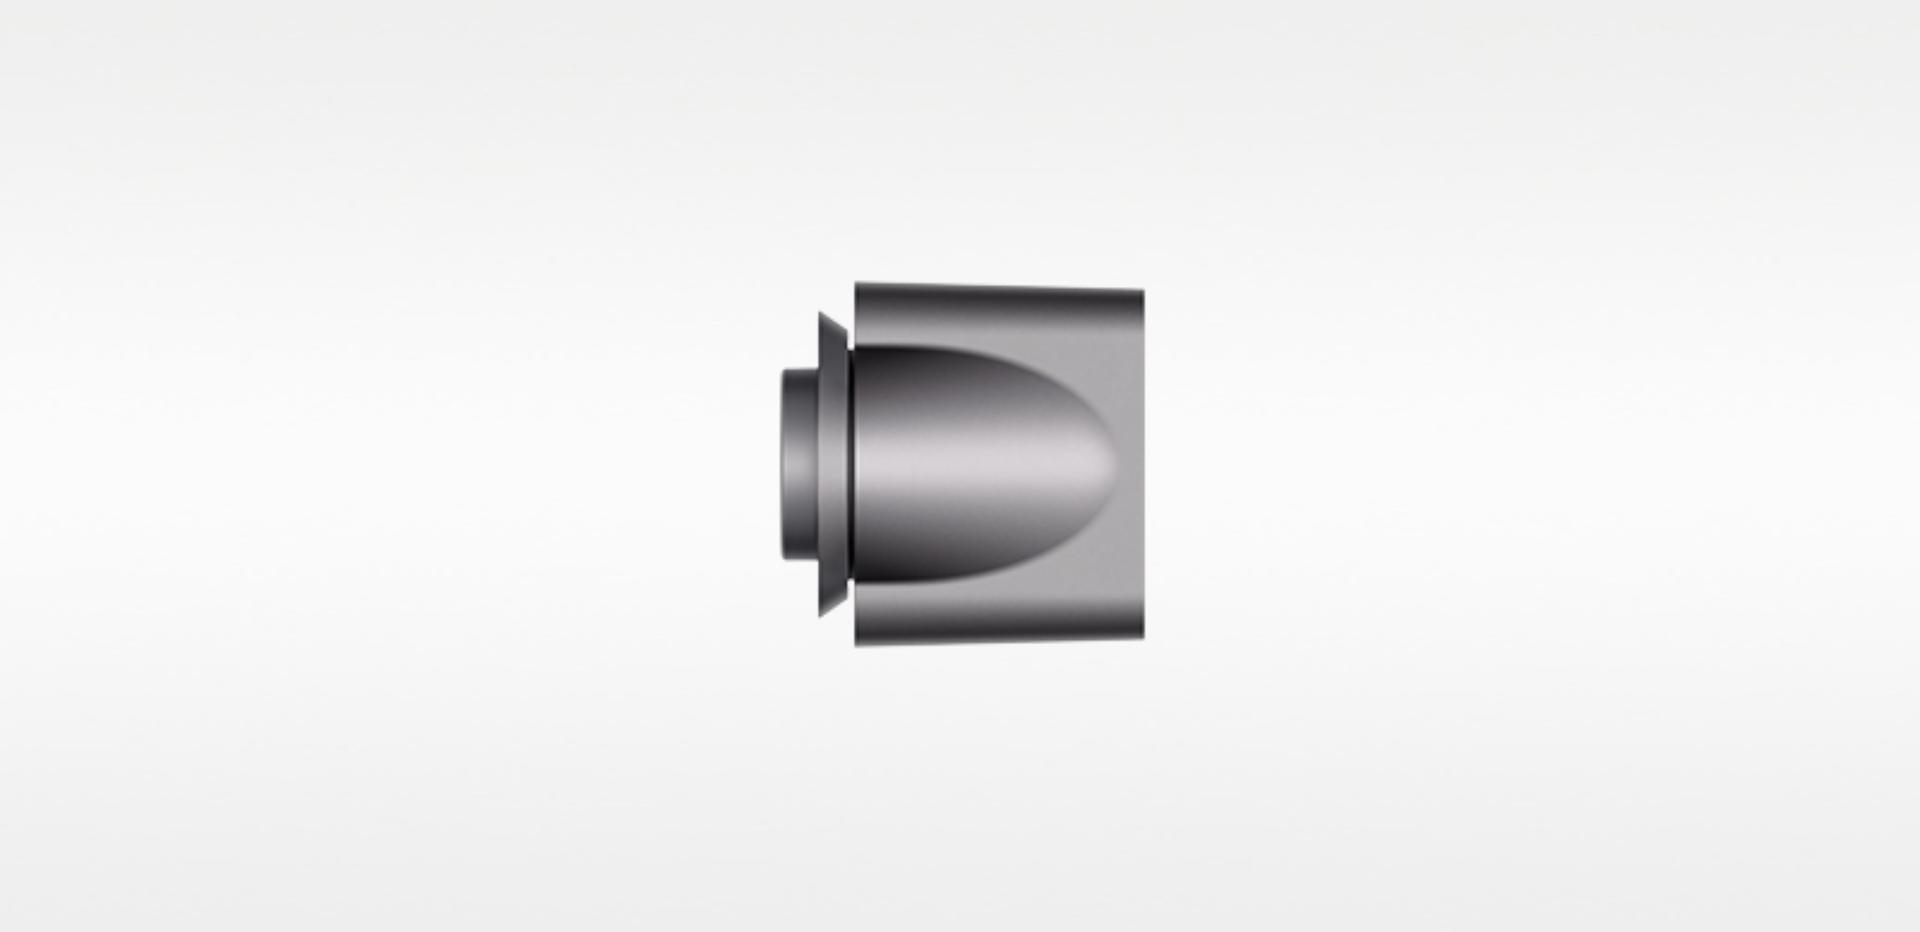 Smoothing nozzle for the Dyson Supersonic™ hair dryer Professional edition